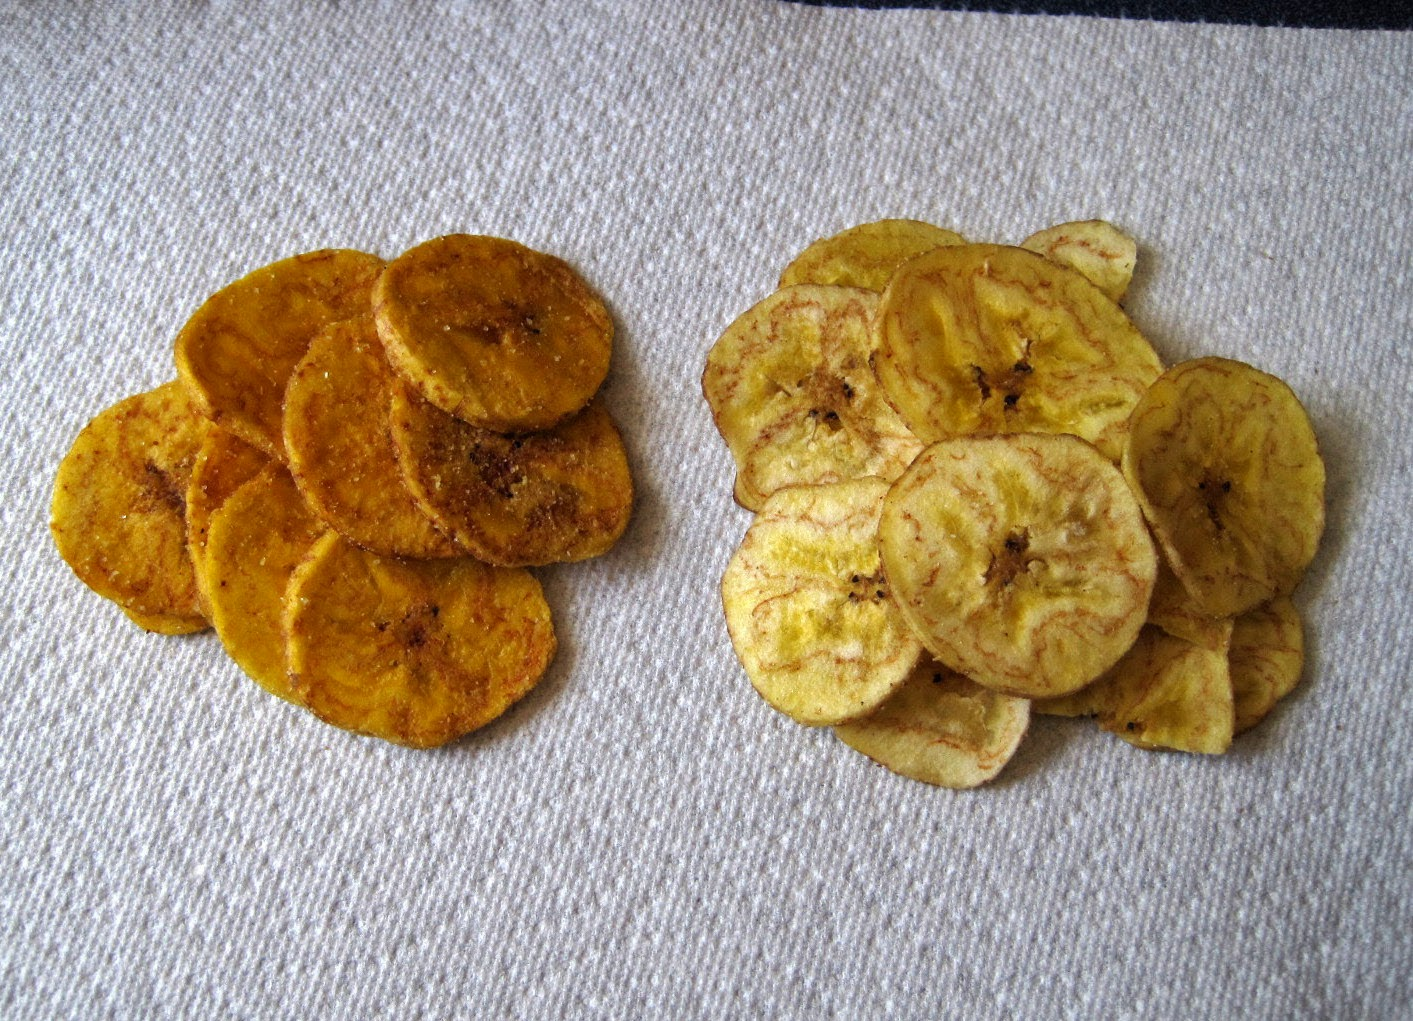 Inka Plantain Chips, Turbana Plantain Chips compared